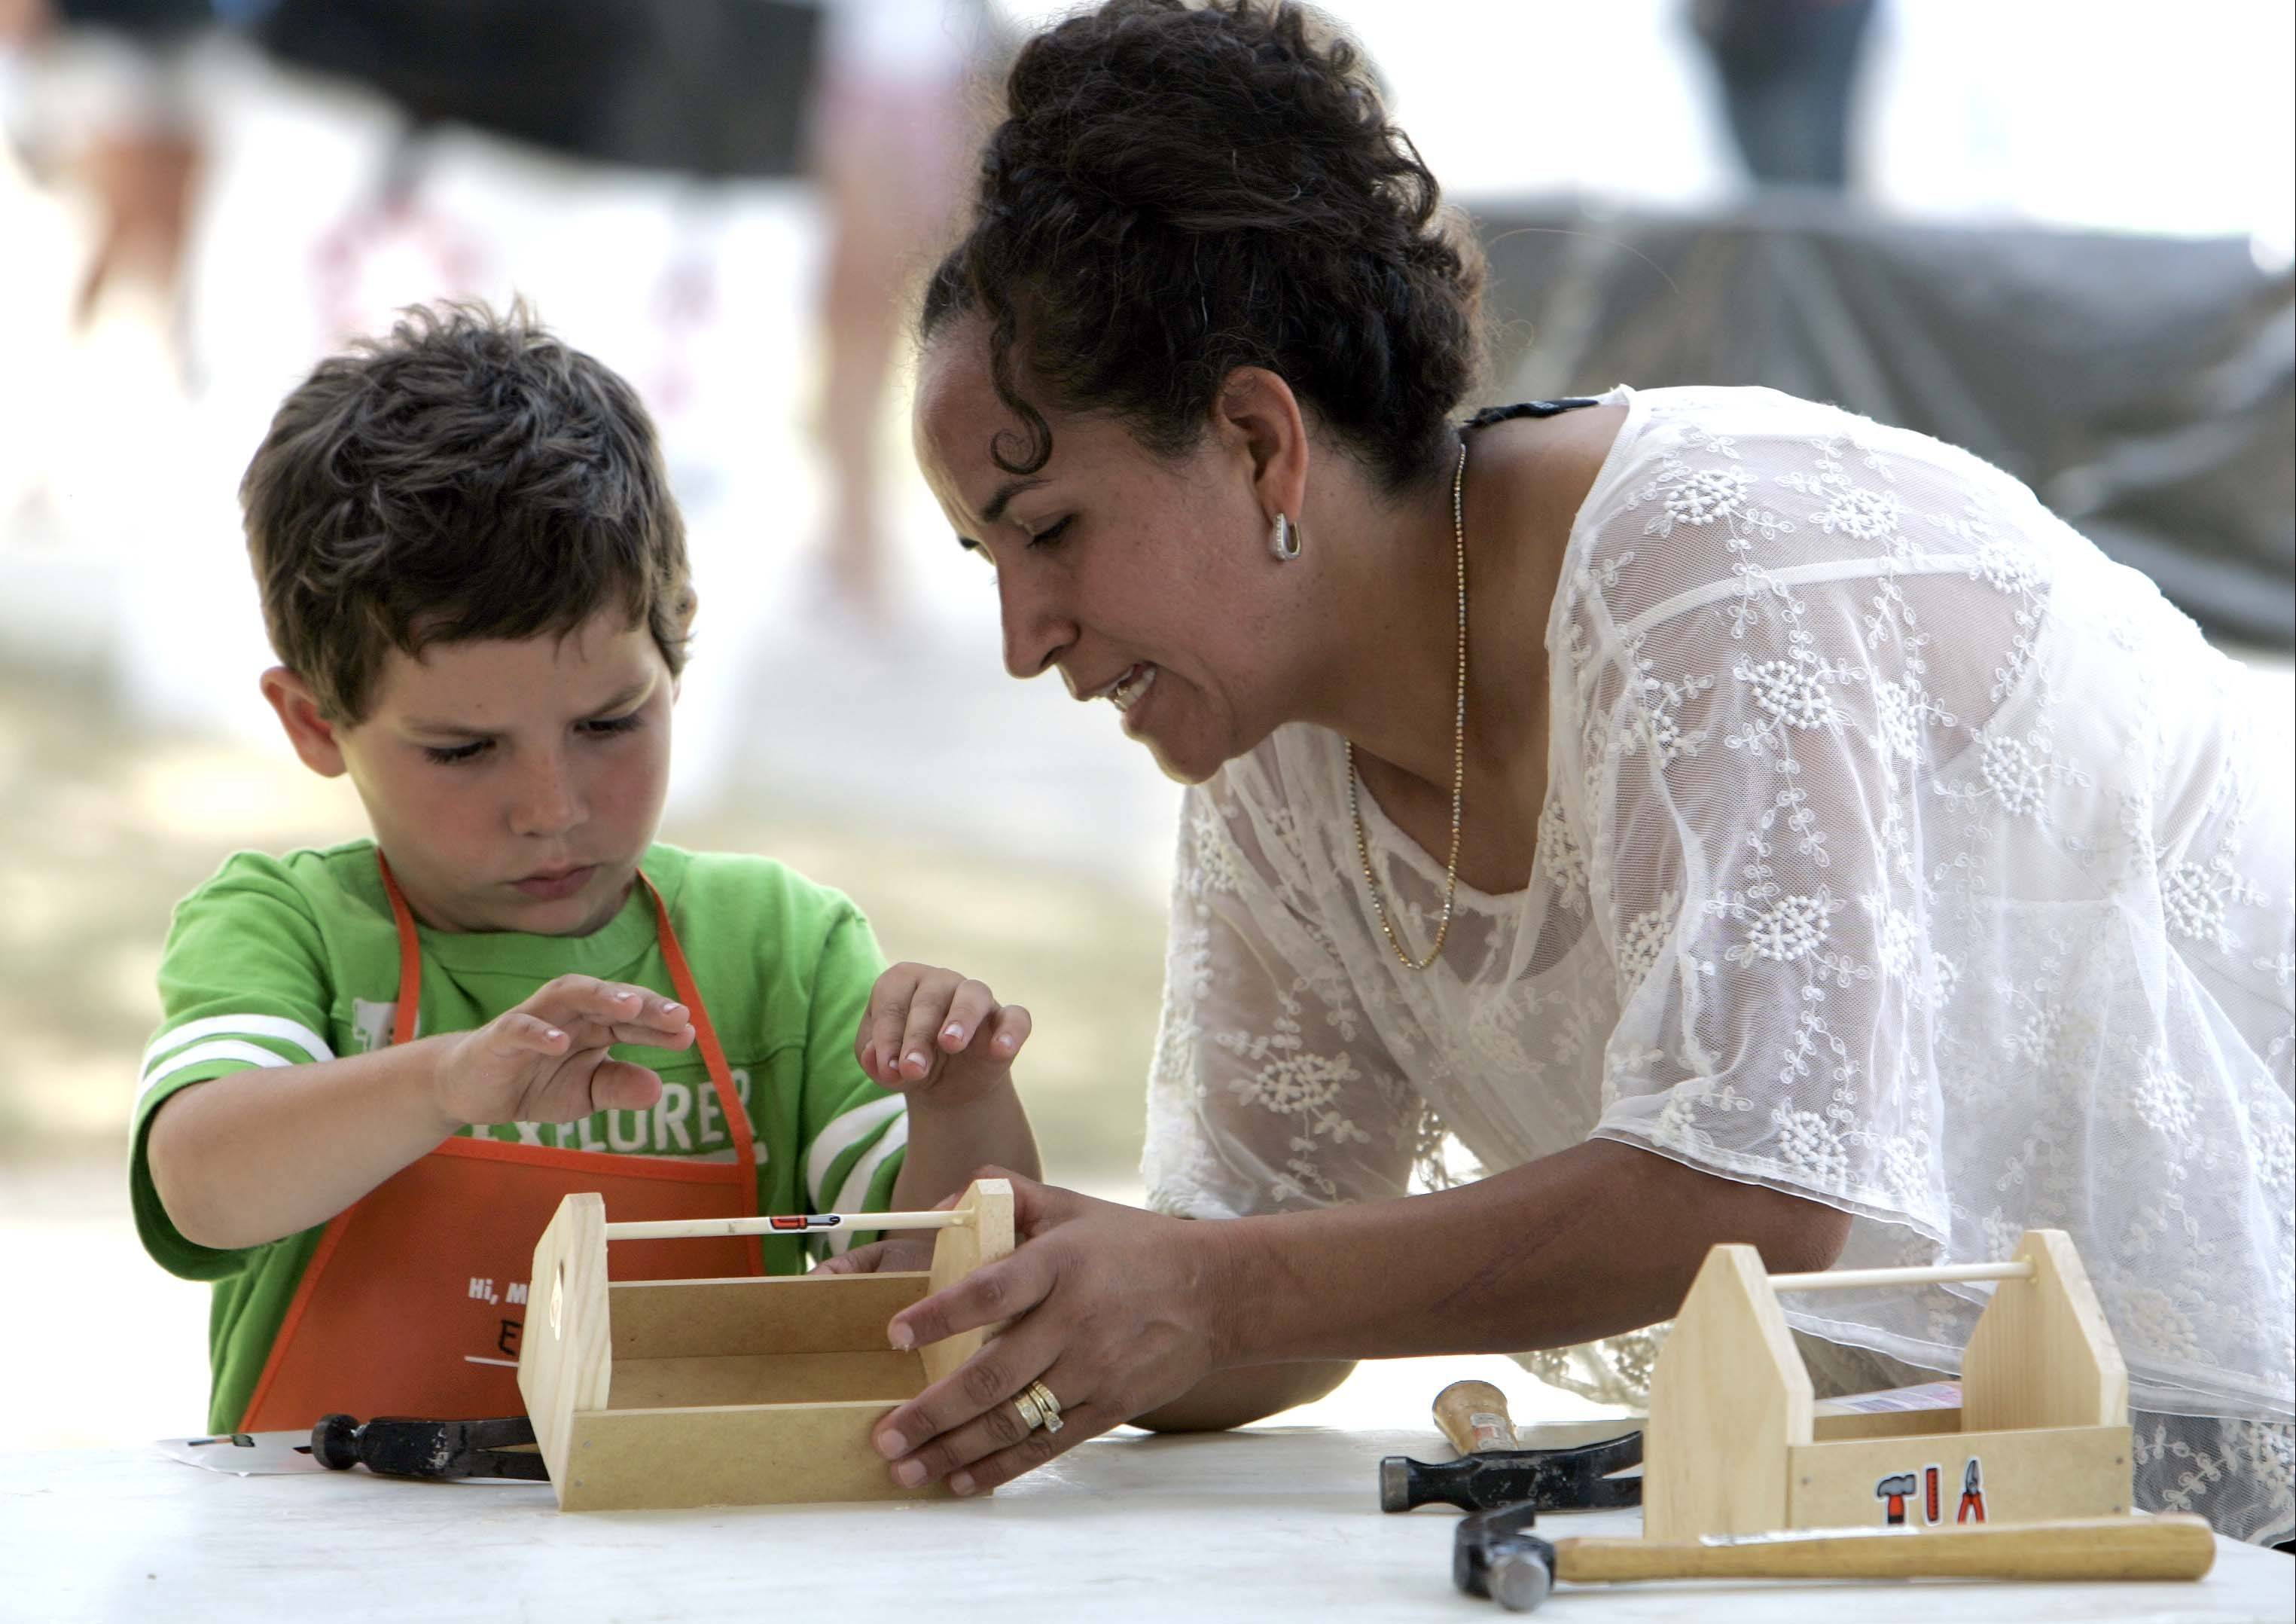 Five-year-old Eric Stoffels of Batavia gets some help from his mom Diocelina to put the finishing touches on his tool box at the Creation Station during last year's Swedish Days festival.